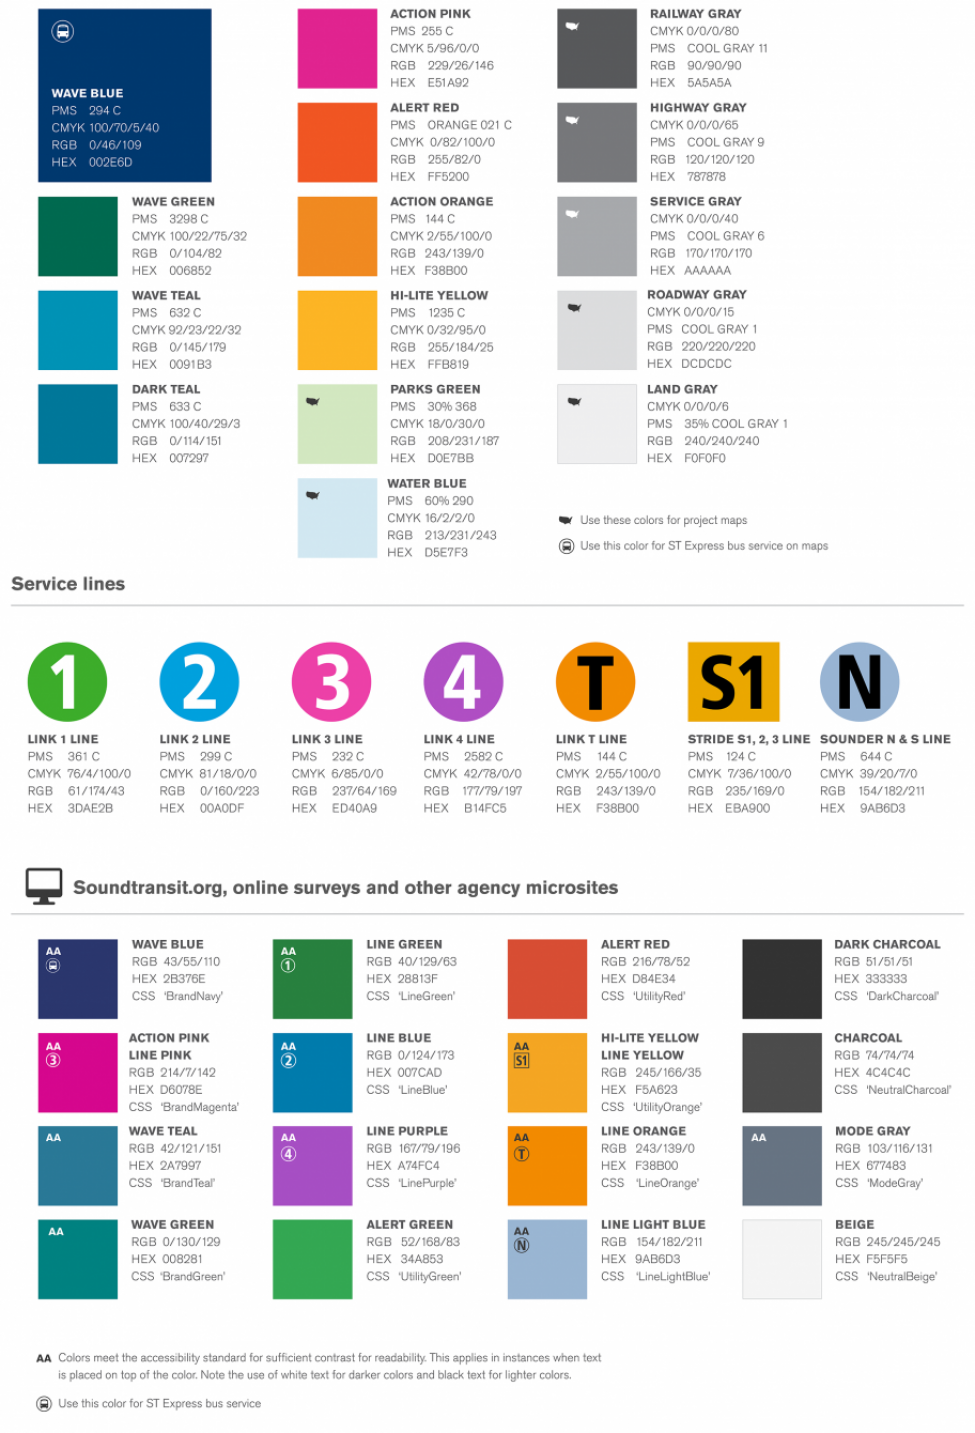 Illustration of the thumbnail guide for Sound Transit brand colors